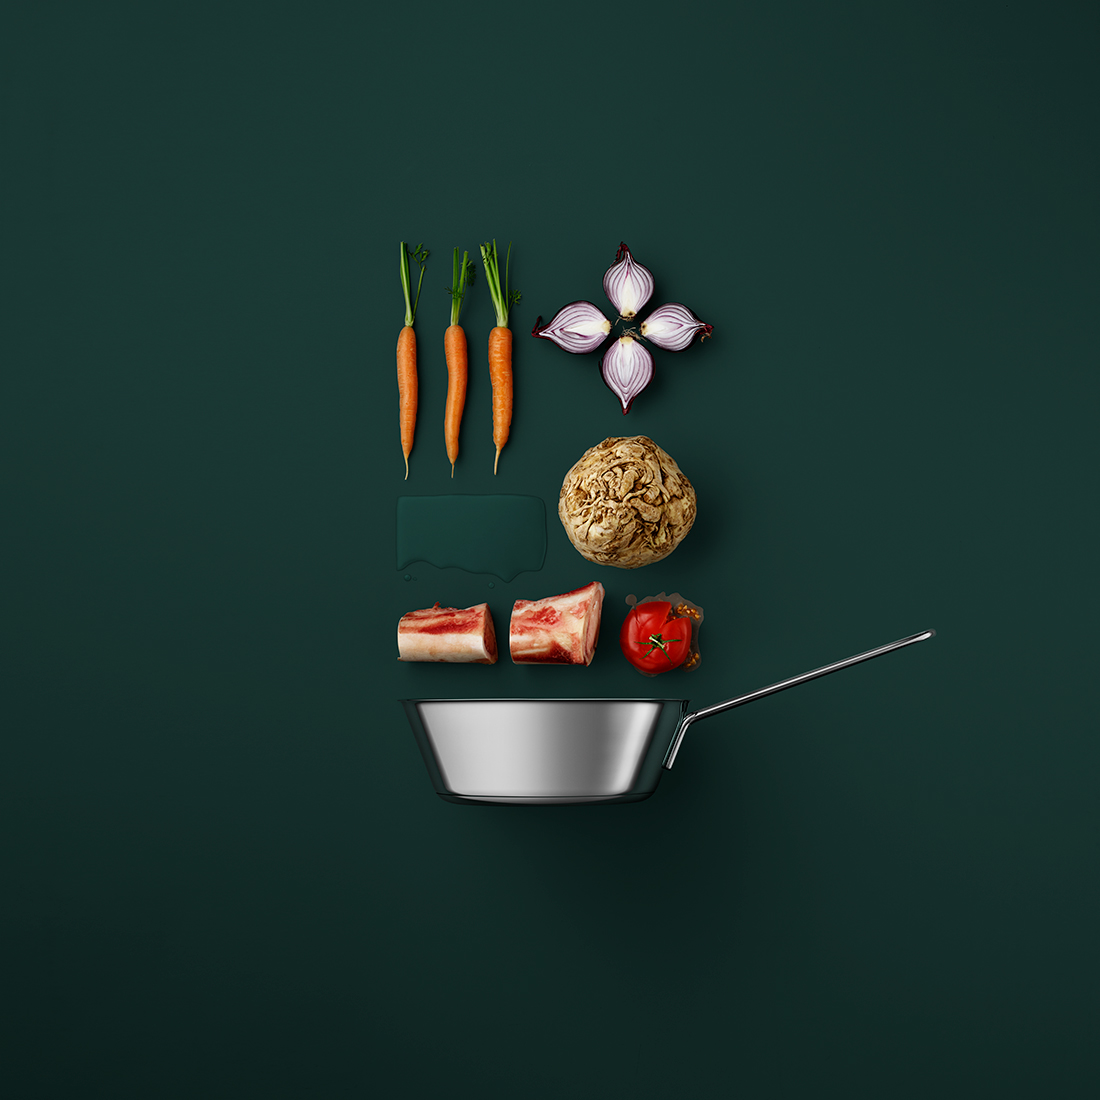 Recipes Organized into Component Parts in Food Styling Photos by Mikkel Jul Hvilshoj (6 pics)